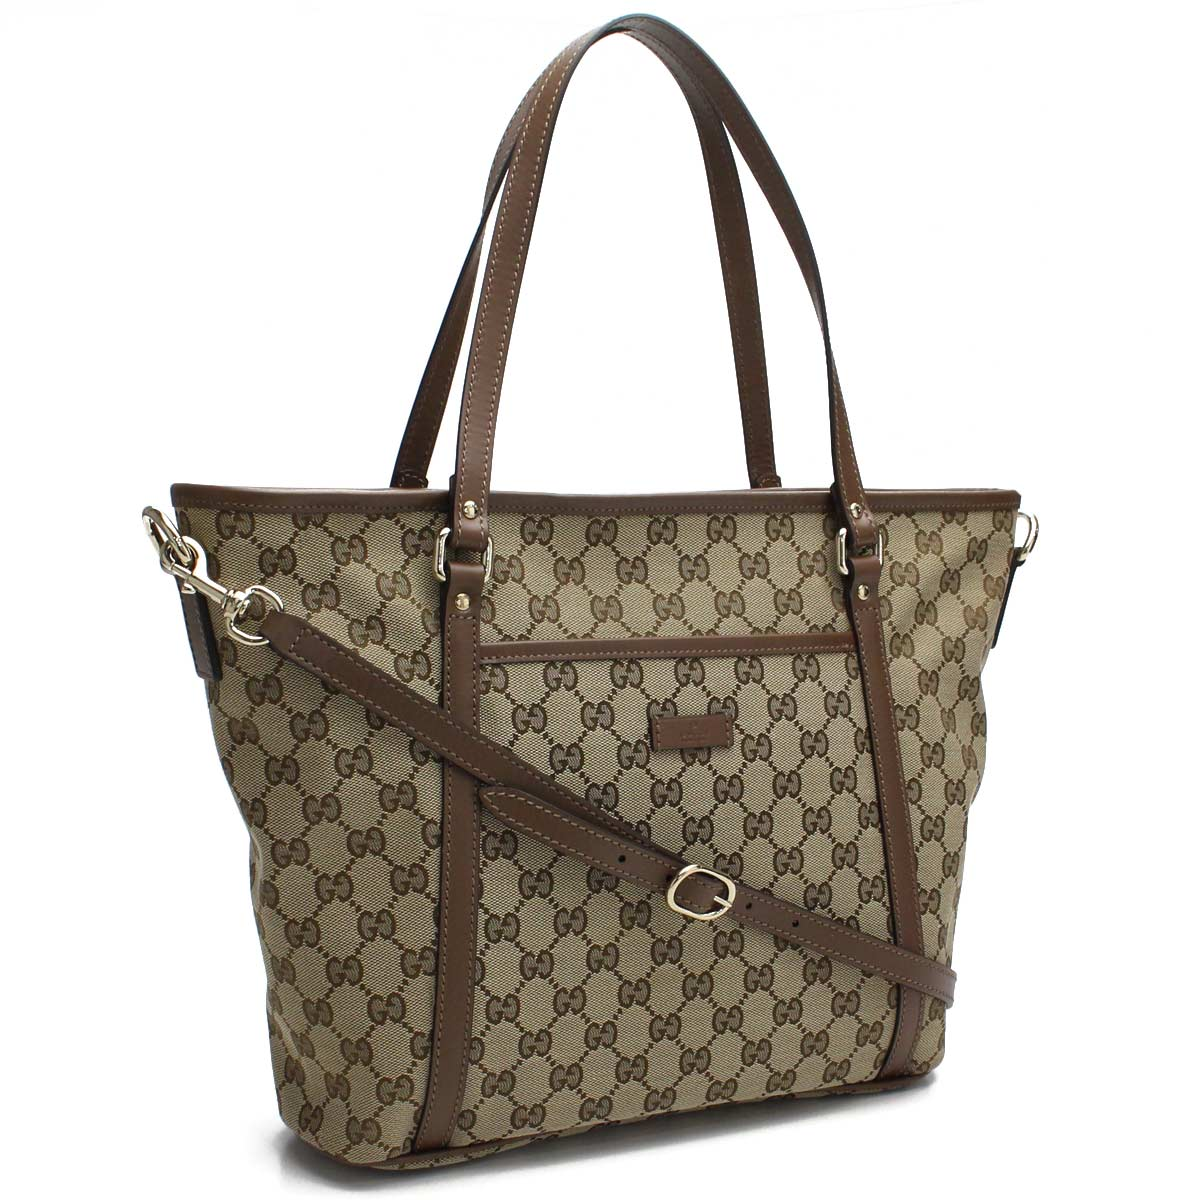 477651c9f7f8 Bighit The total brand wholesale: Gucci GUCCI GG canvas 2way tote bag  388929 KQWFZ 8871 brown system | Rakuten Global Market